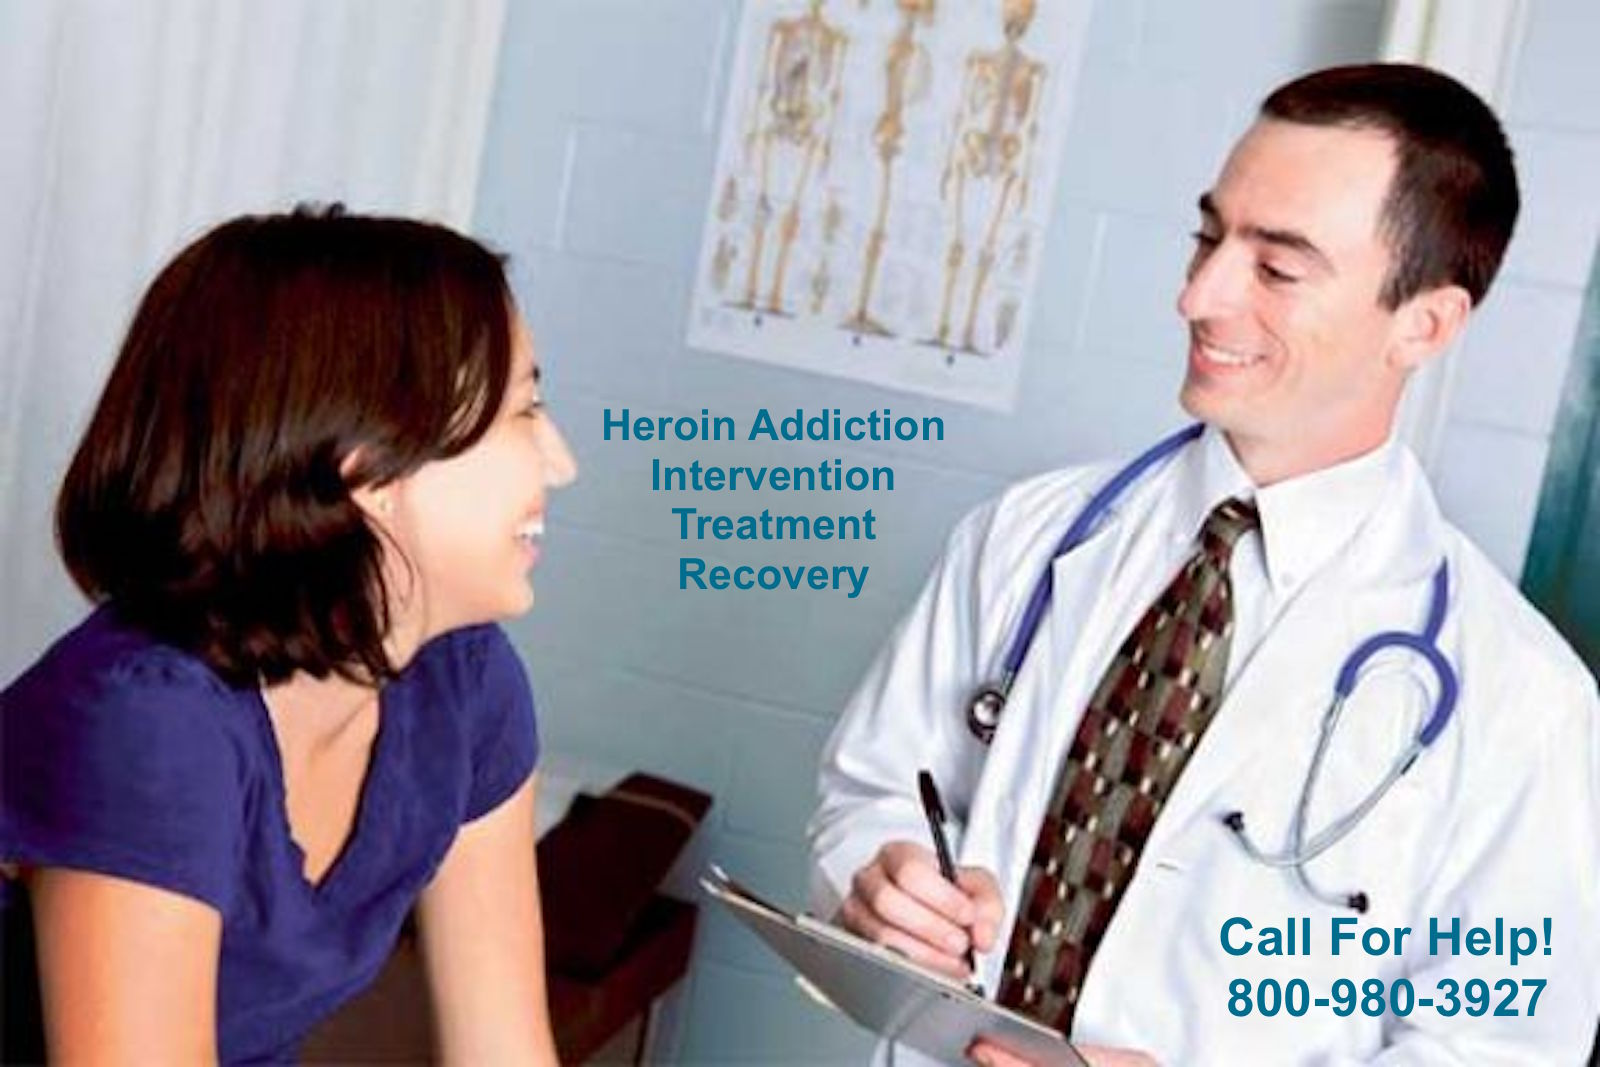 Heroin Intervention | Heroin Treatment | Heroin Addiction Recovery